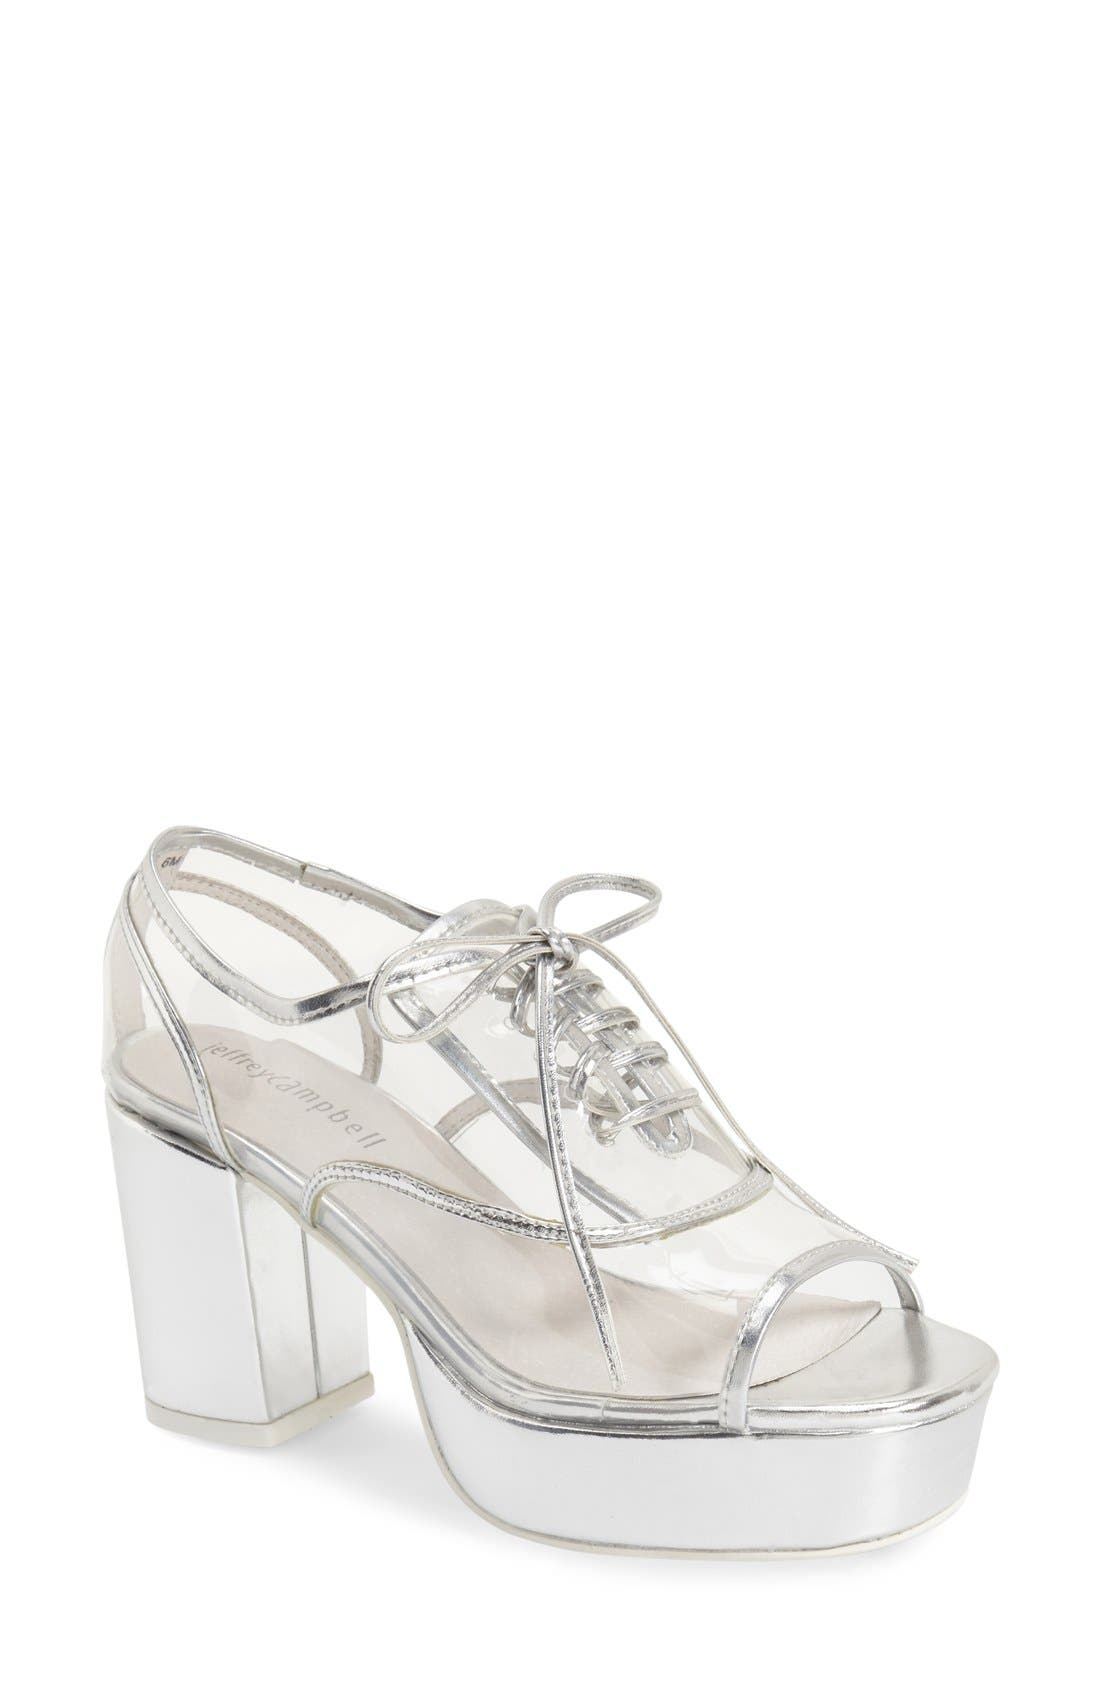 Alternate Image 1 Selected - Jeffrey Campbell 'Nearly' Platform Oxford (Women)